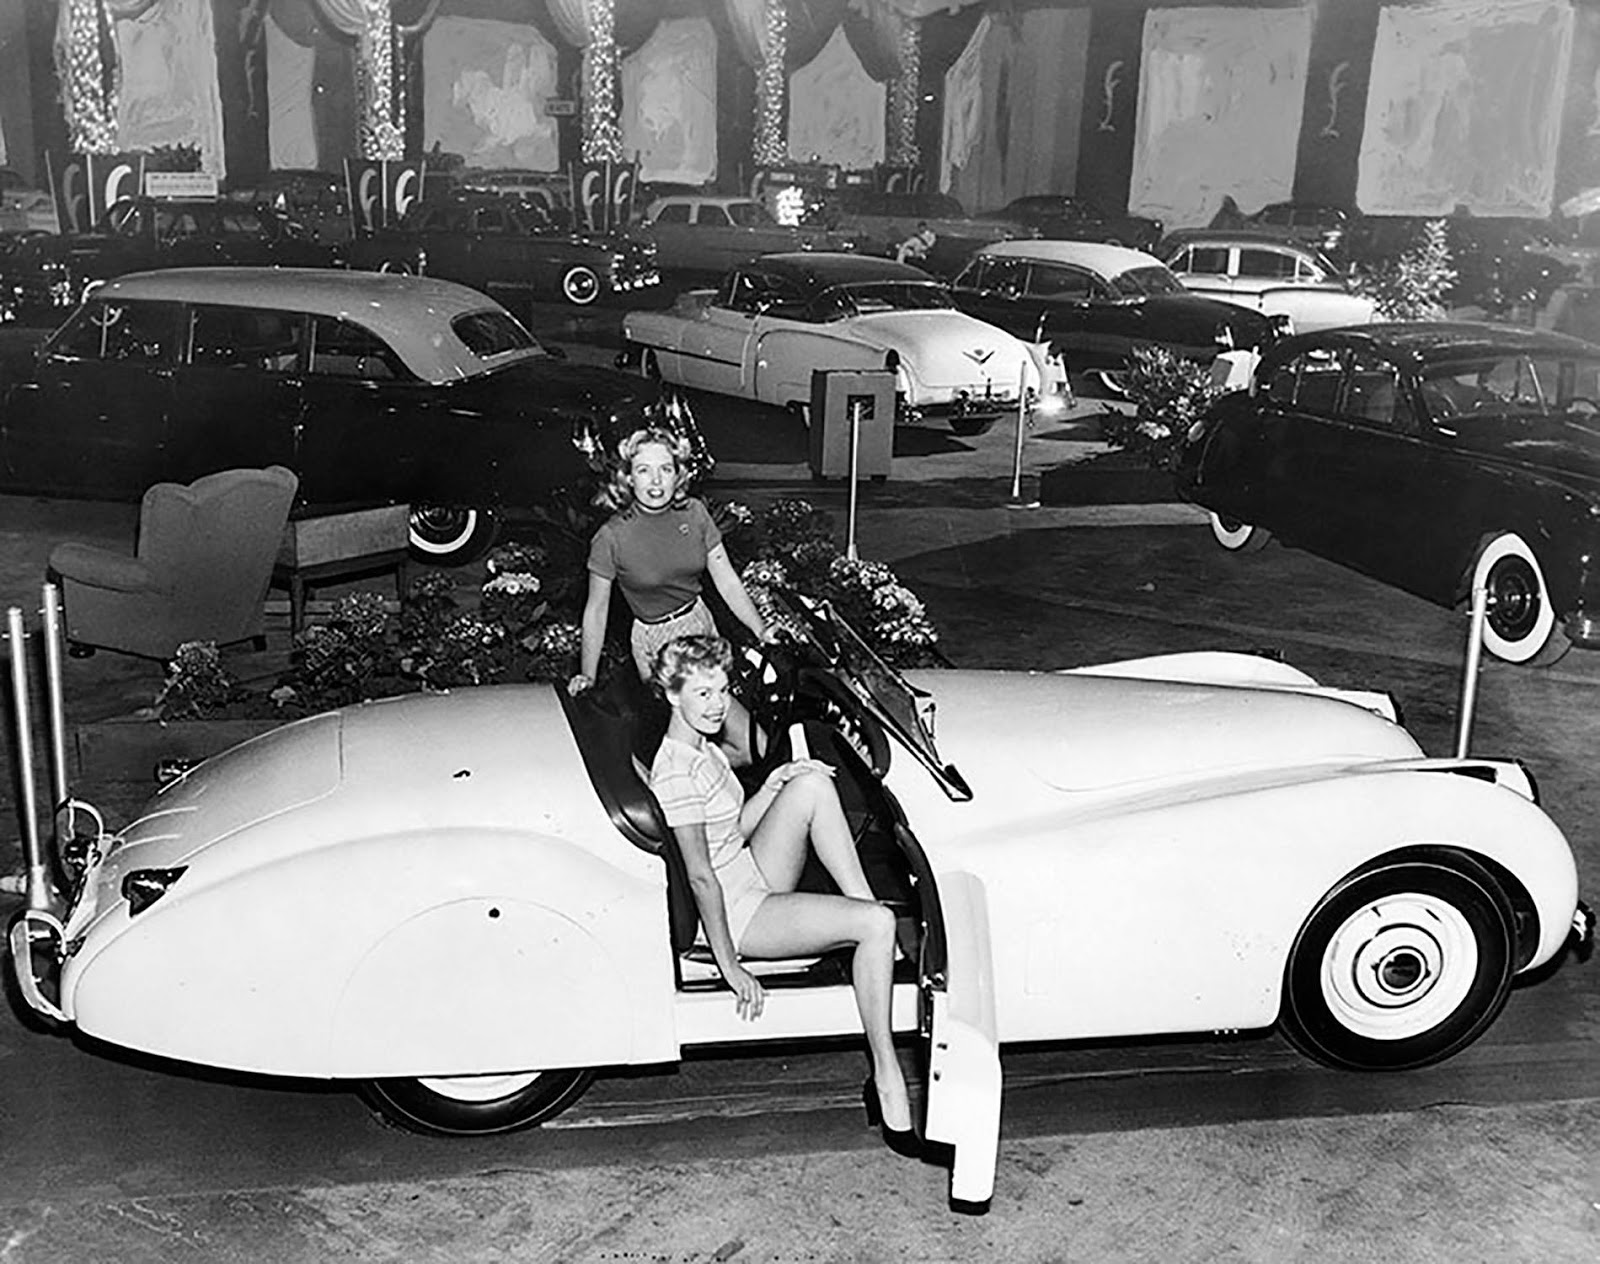 A New Jaguar On Display At The 1952 Los Angeles International Auto Show  Held At The Pan Pacific Auditorium